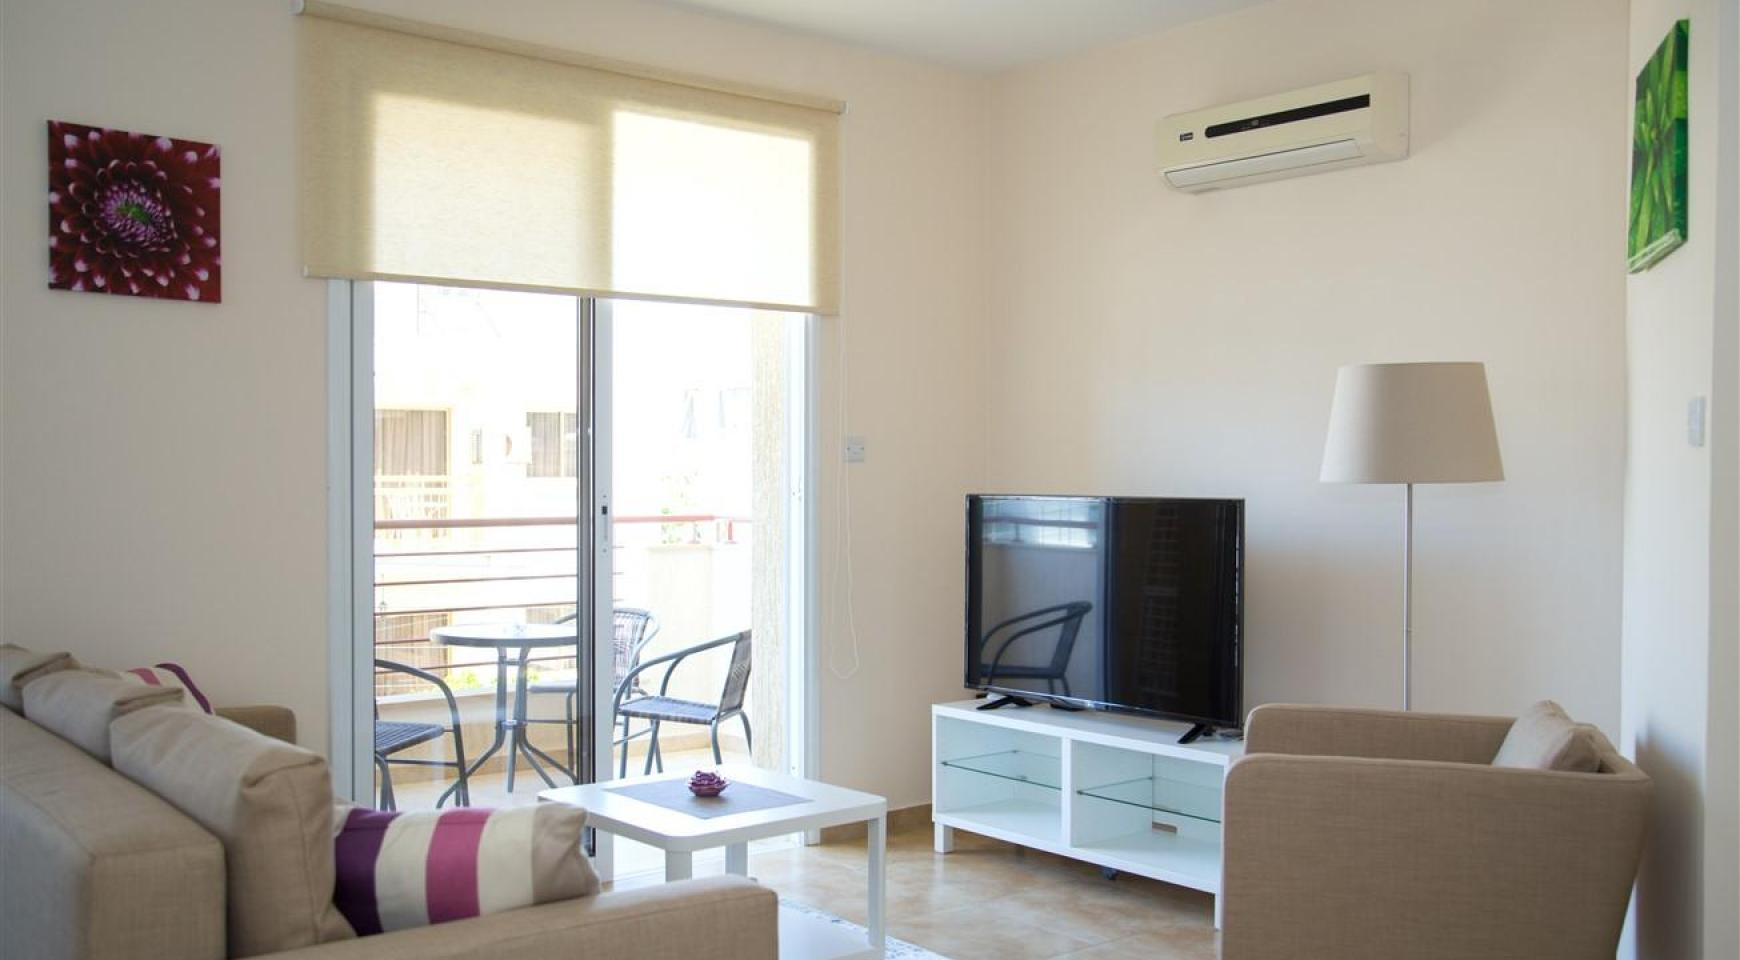 Luxury One Bedroom Apartment Frida 104 in the Tourist Area - 3